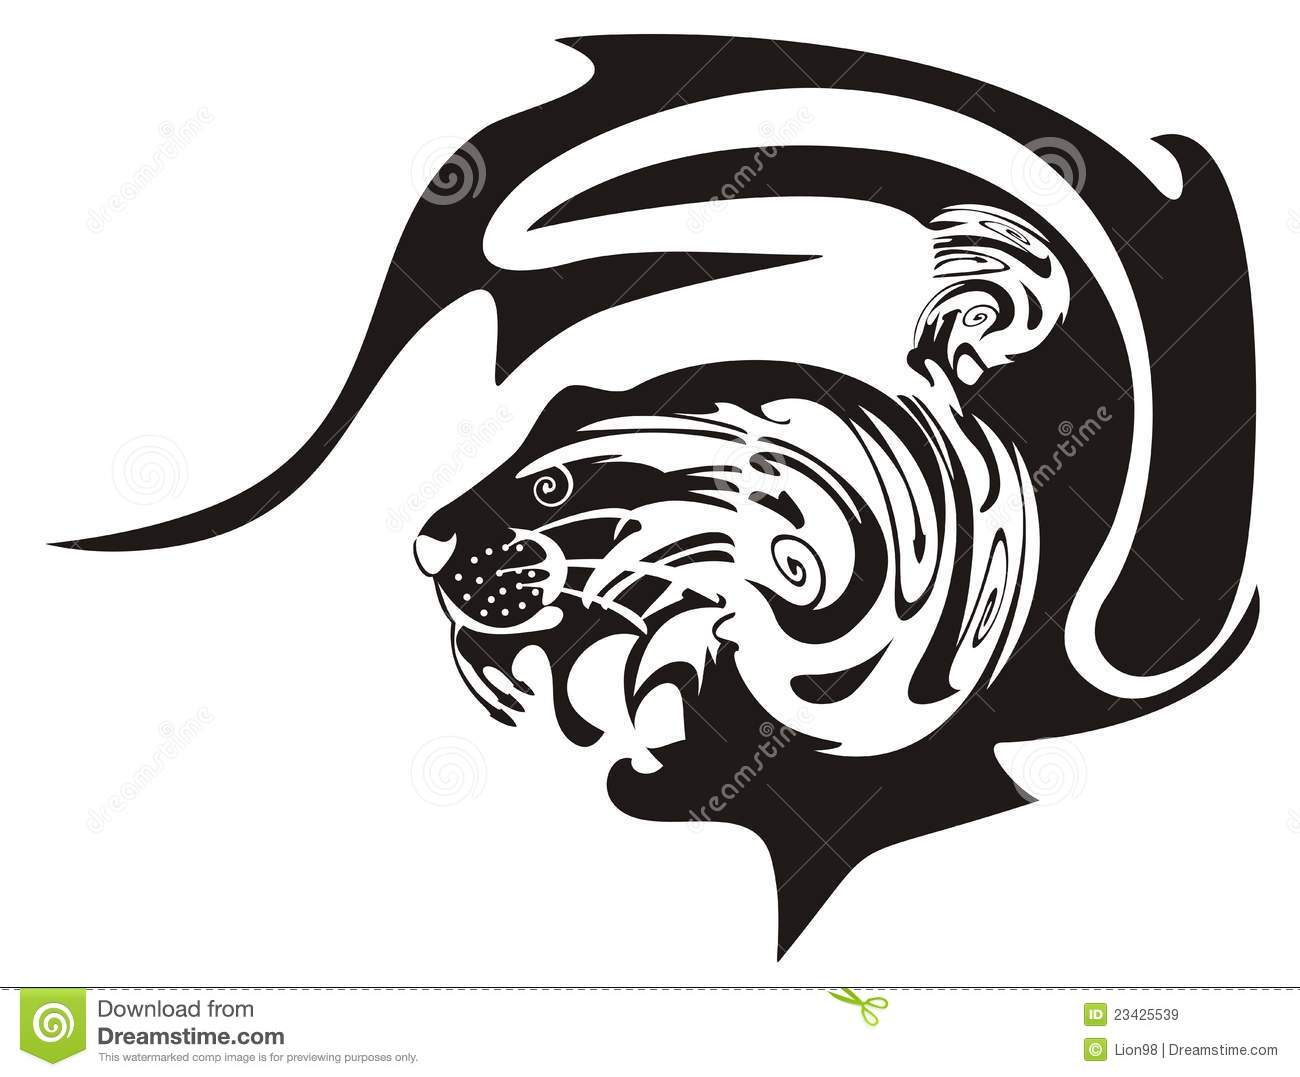 Tiger symbol stock vector illustration of mammal black 23425539 tiger symbol biocorpaavc